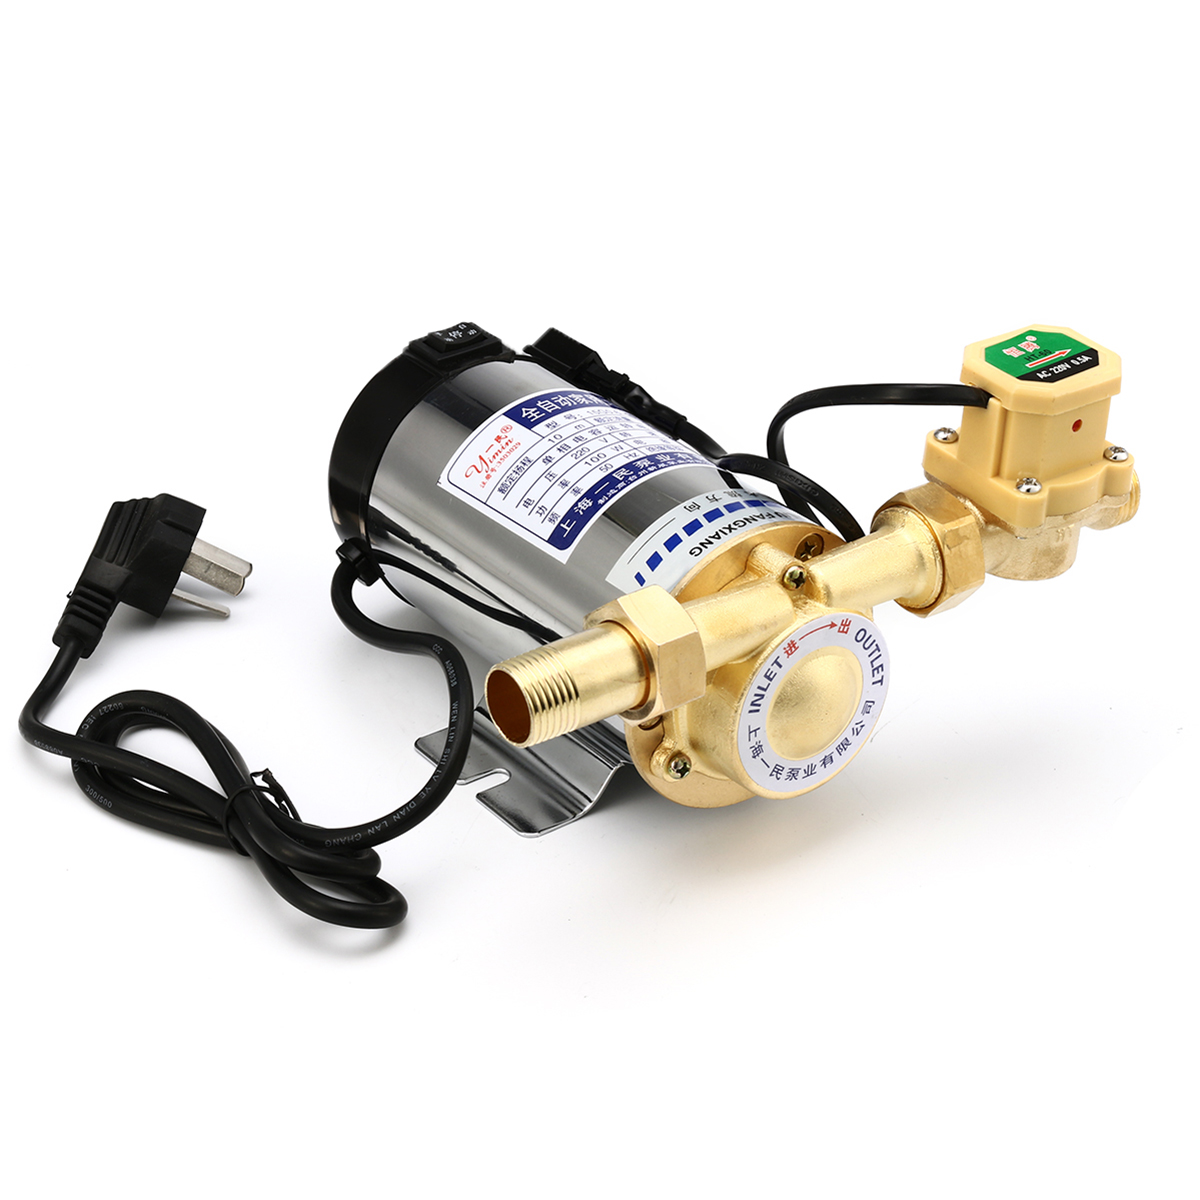 100W/150W Water Pressure Booster Pump Shower Home Electric Automatic Stainless Steel Water Pump